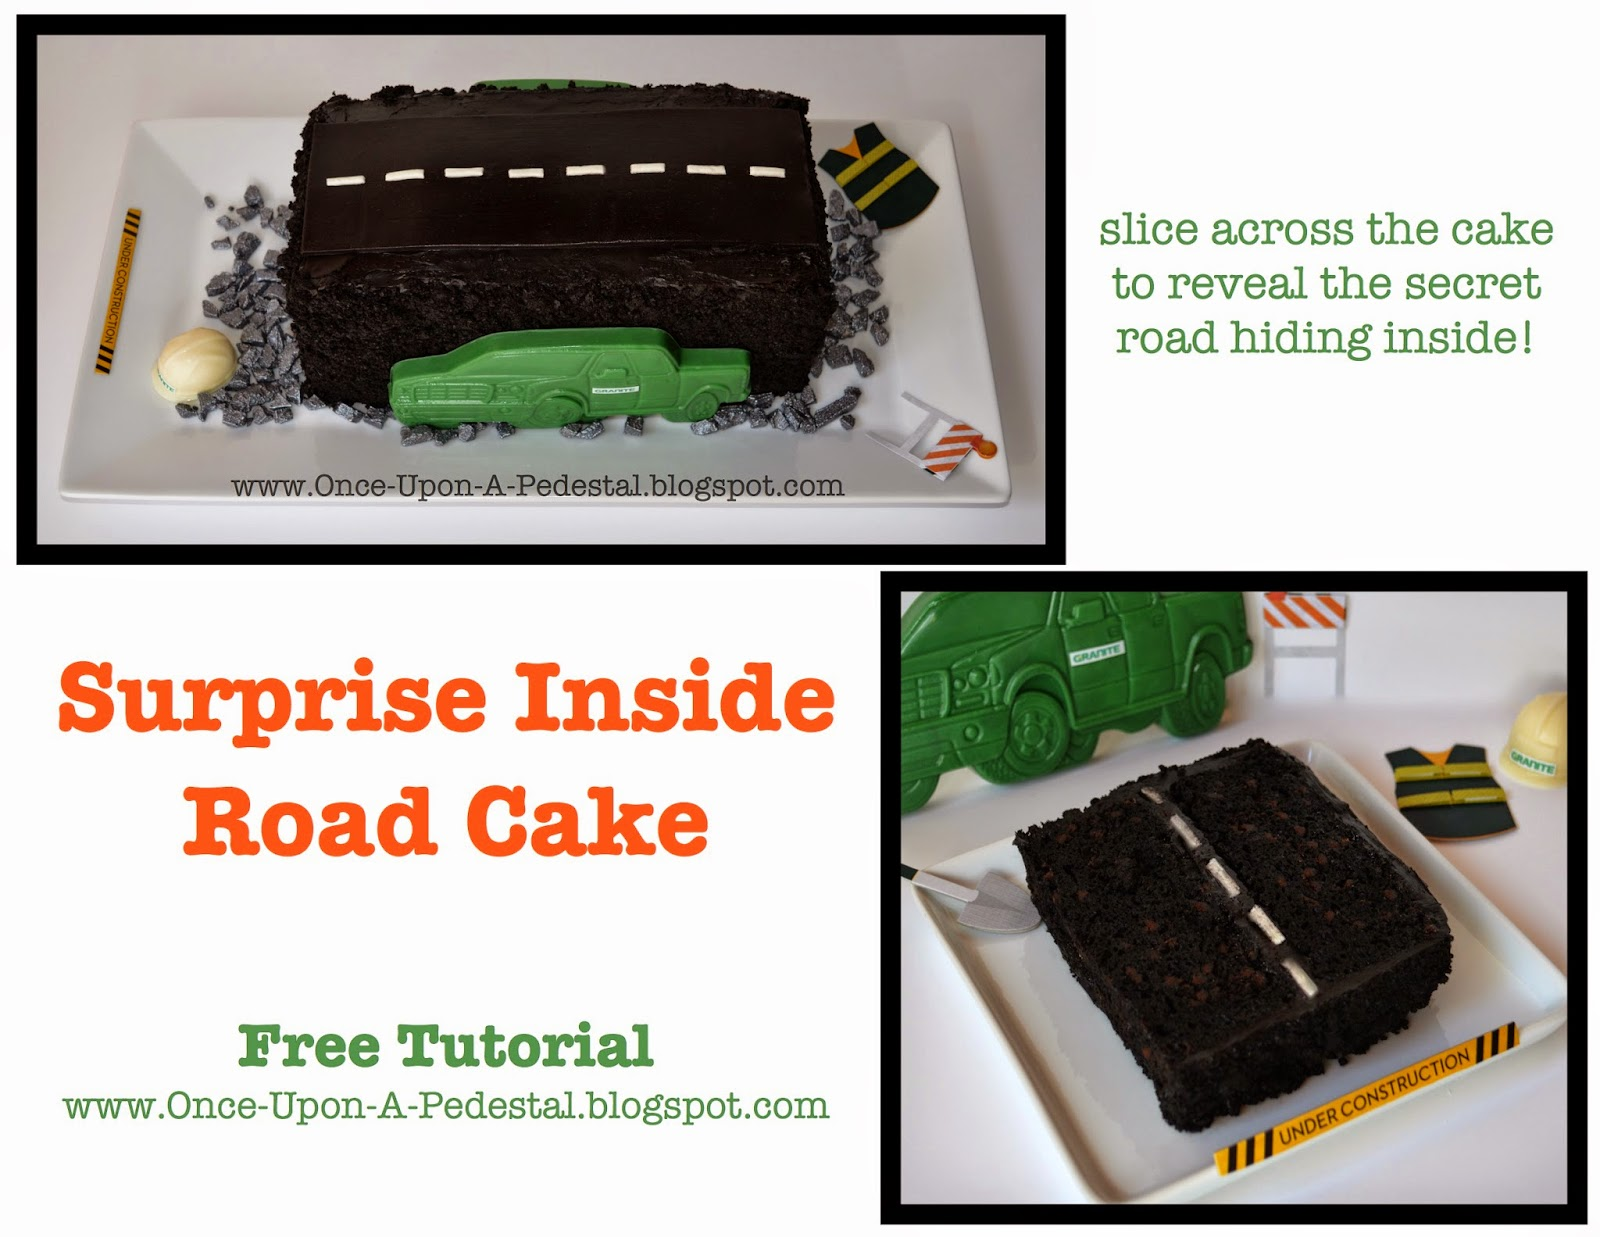 surprise-inside-cake-road-construction-deborah-stauch